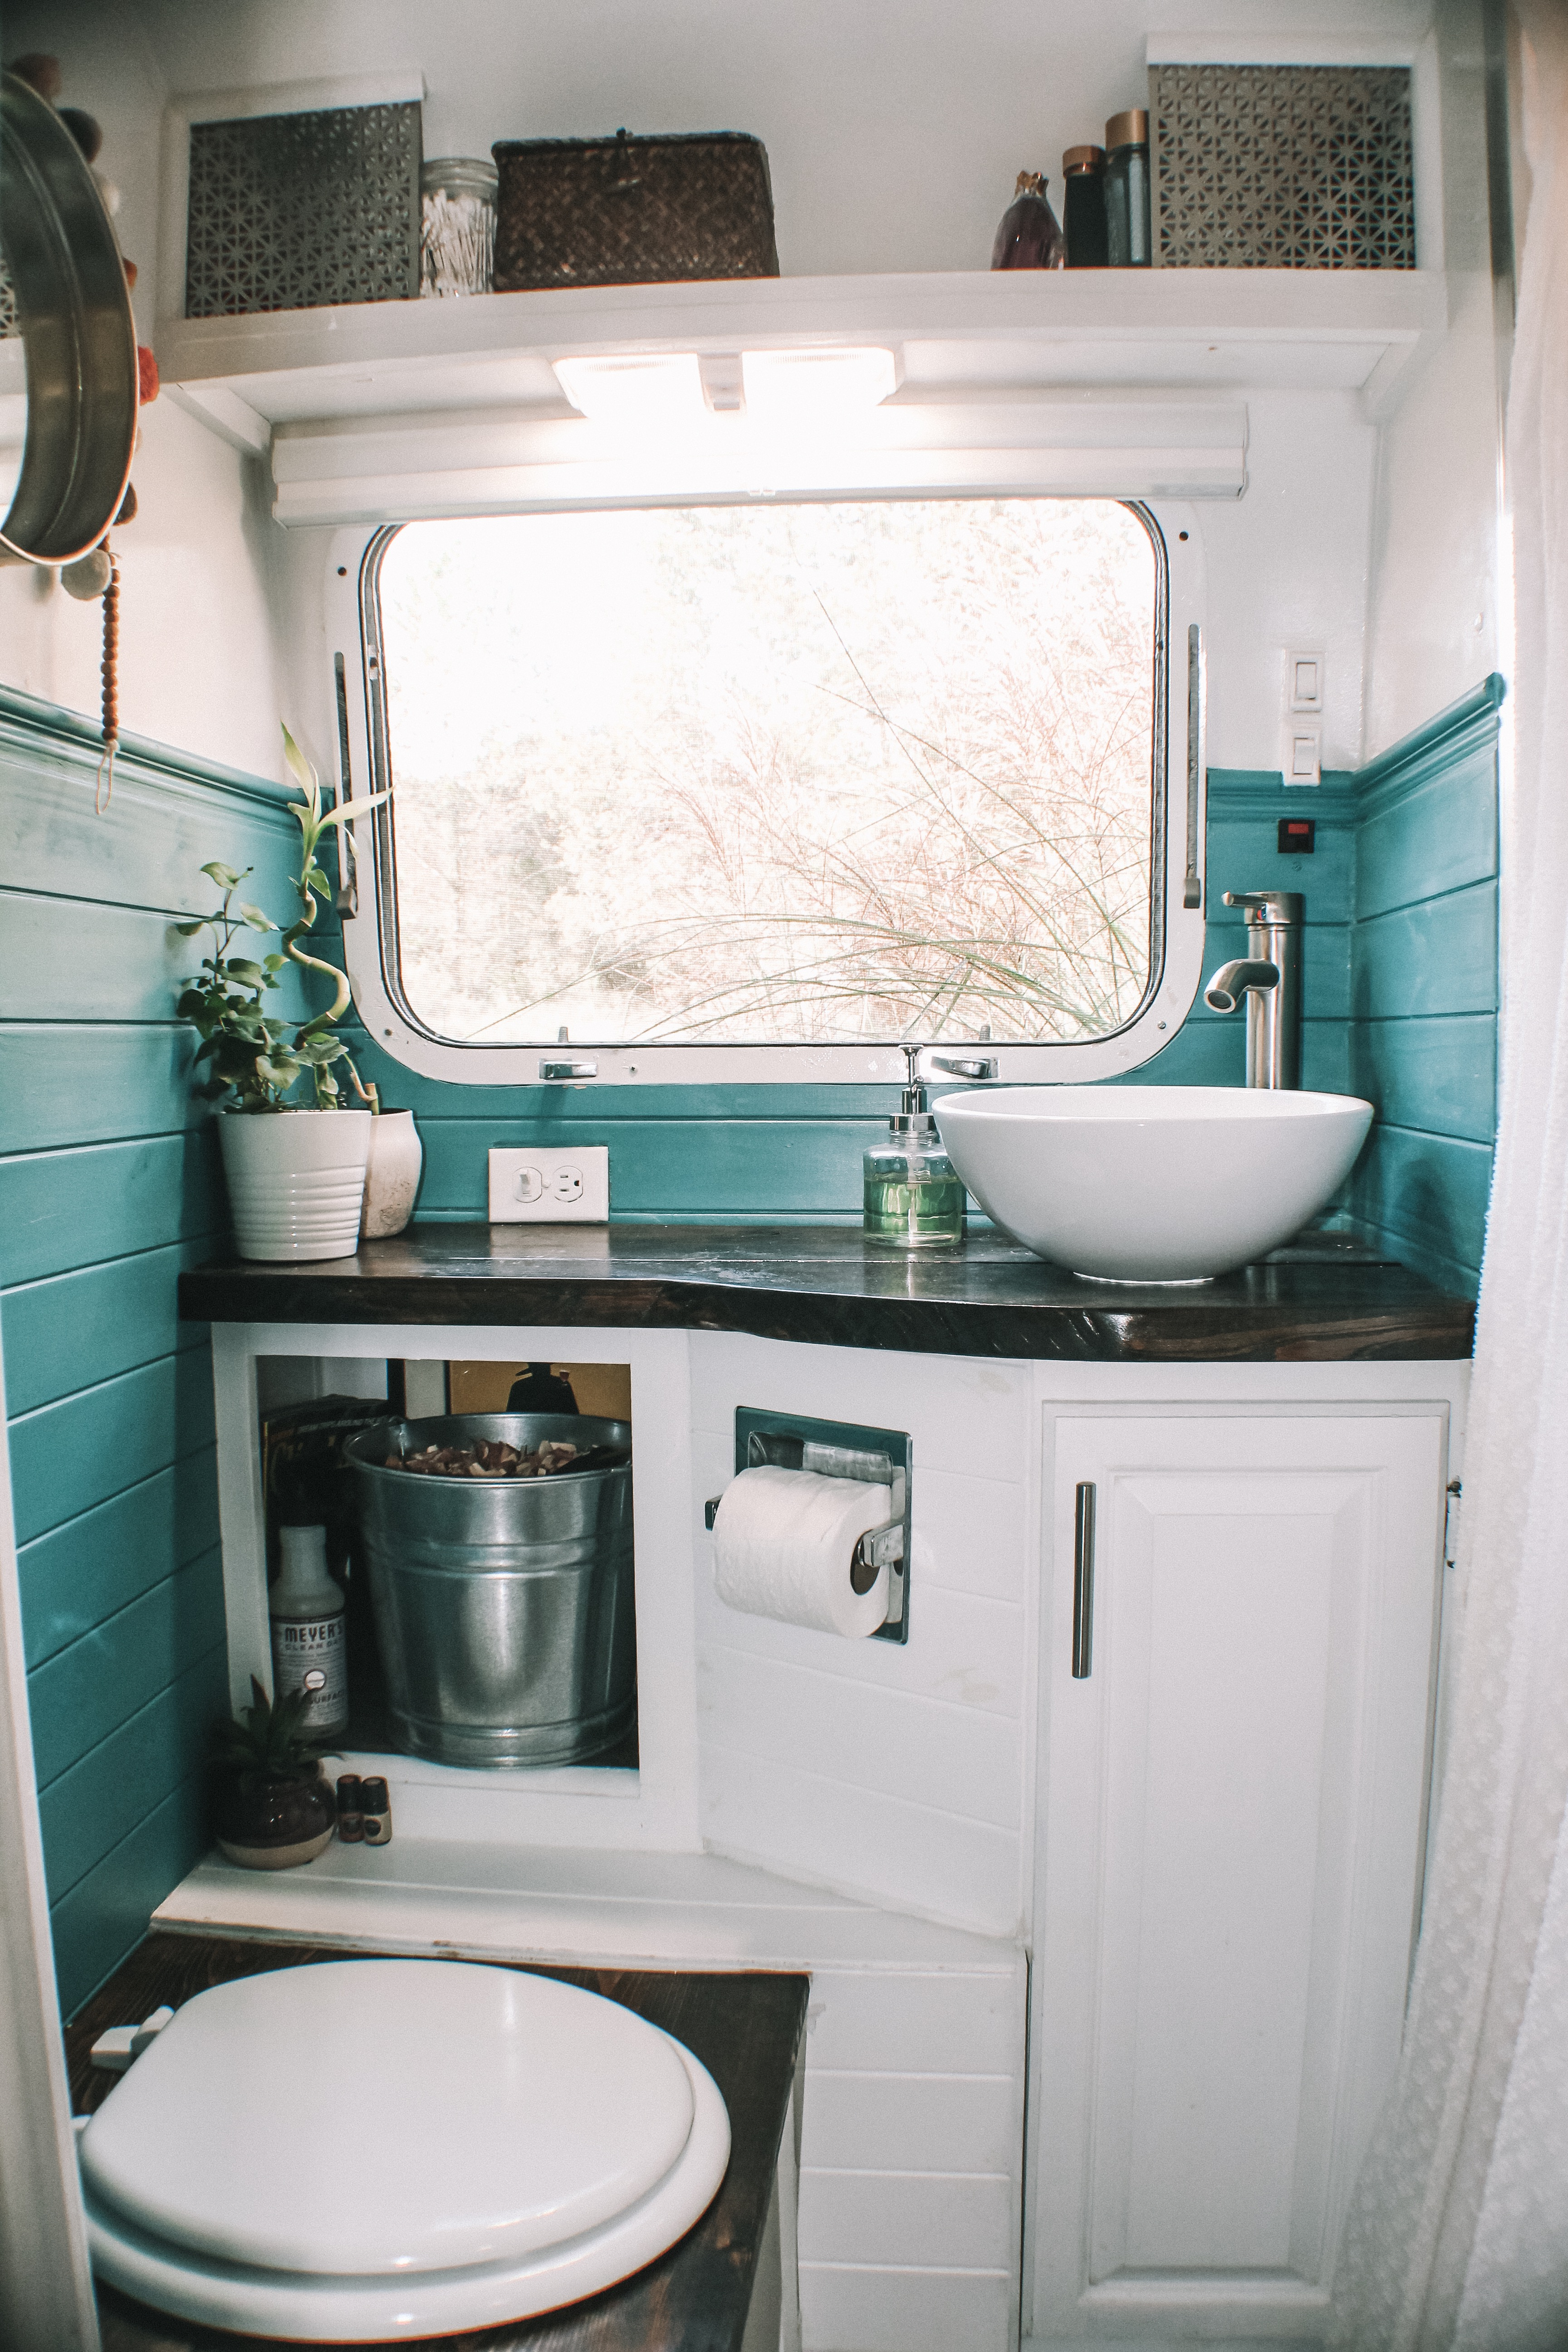 Tiny House Bathrooms That Are Small But Stylish Apartment Therapy